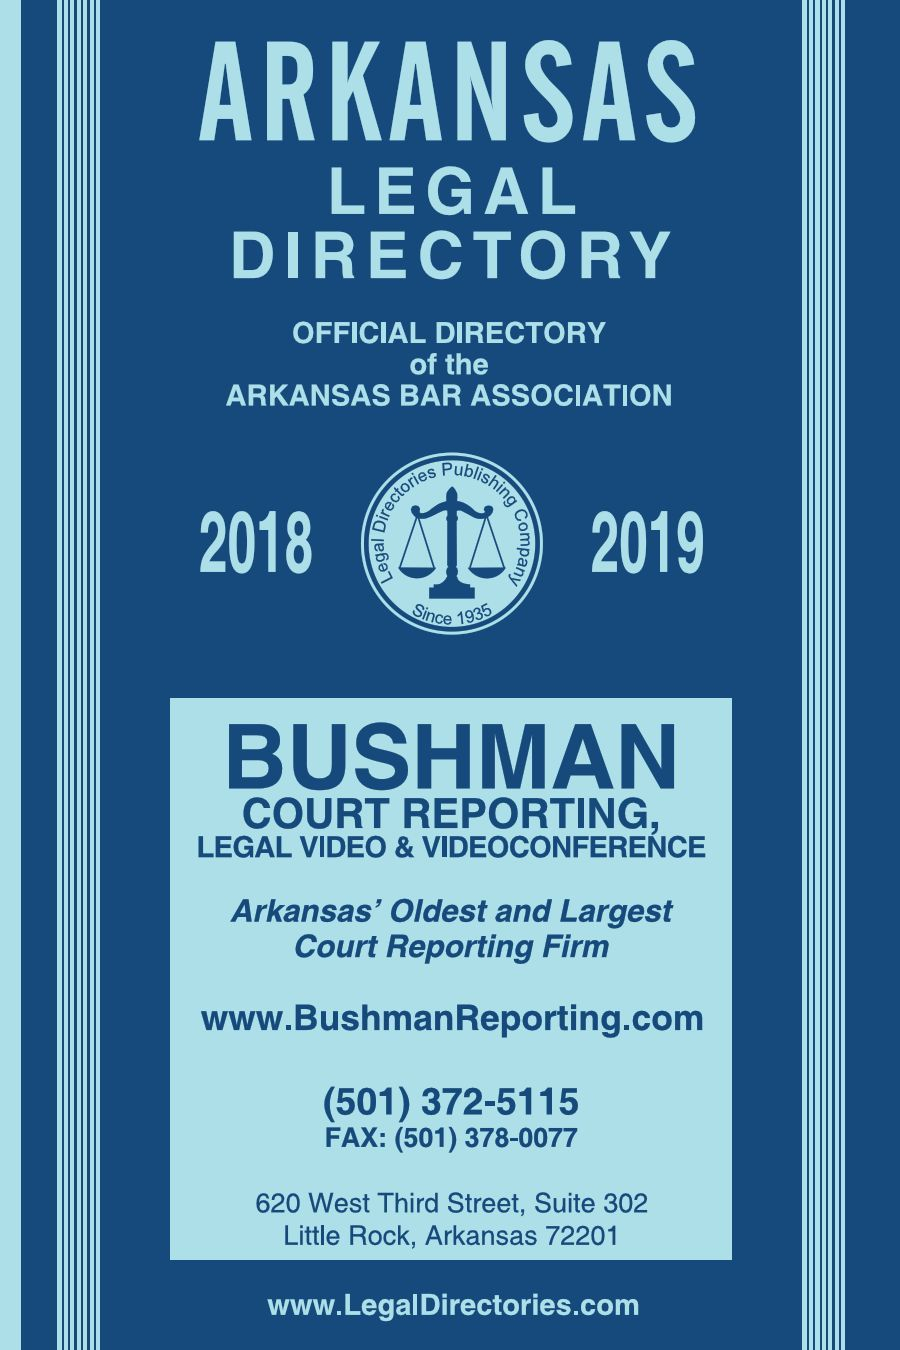 2018 2019 Arkansas Legal Directory Pages 1 - 50 - Text With Regard To Billings School District 2 2021 20 Calendar